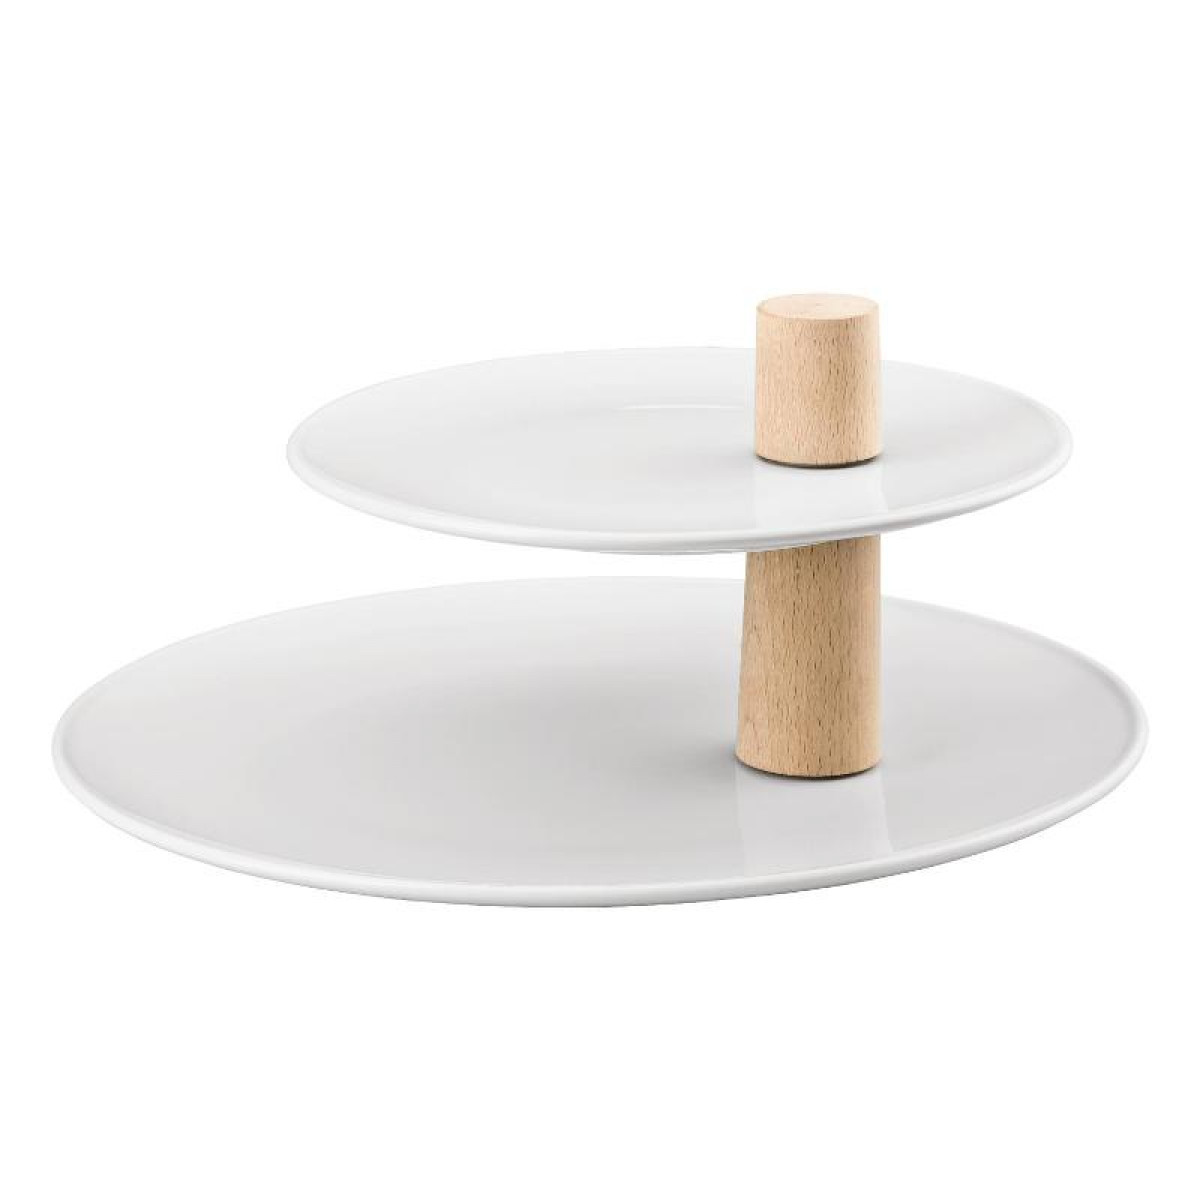 Holz Weiß Thomas Ono Weiss Holz Serving Stand 2 Piece Set Upper Plate 22 Cm Lower Plate 32 Cm